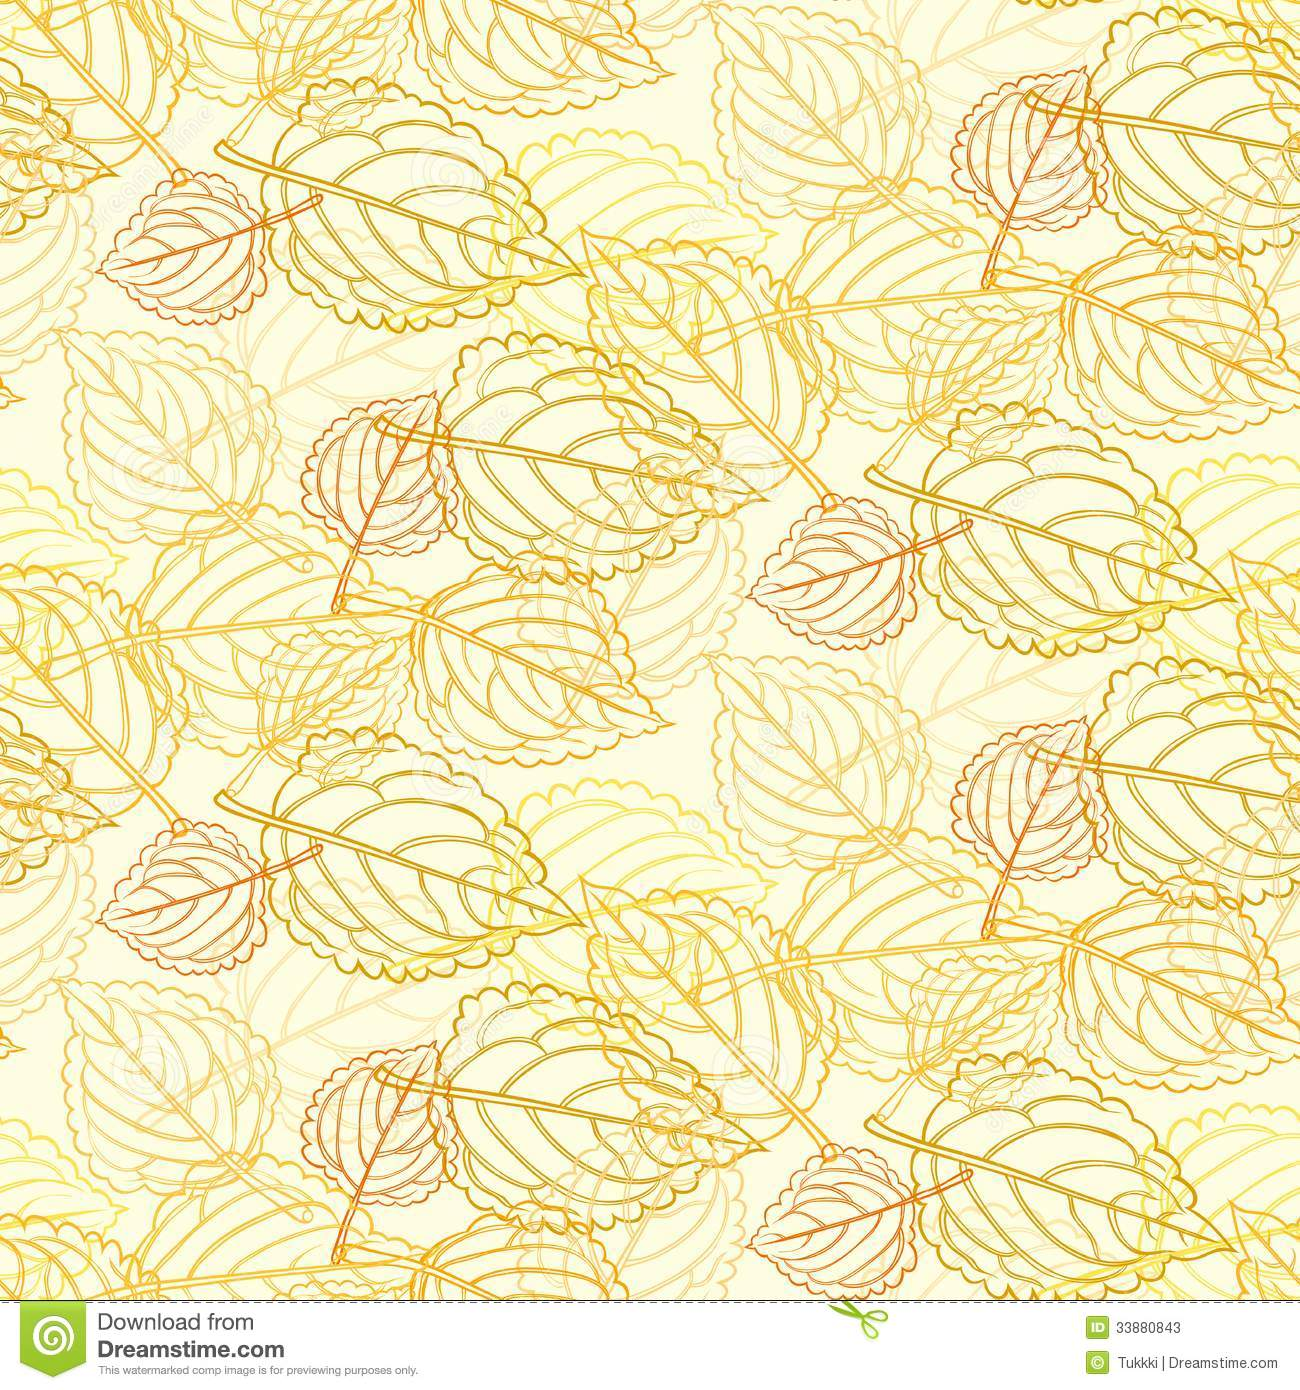 Elegant pattern with leafs drawn in thin lines stock for Simple elegant wallpaper